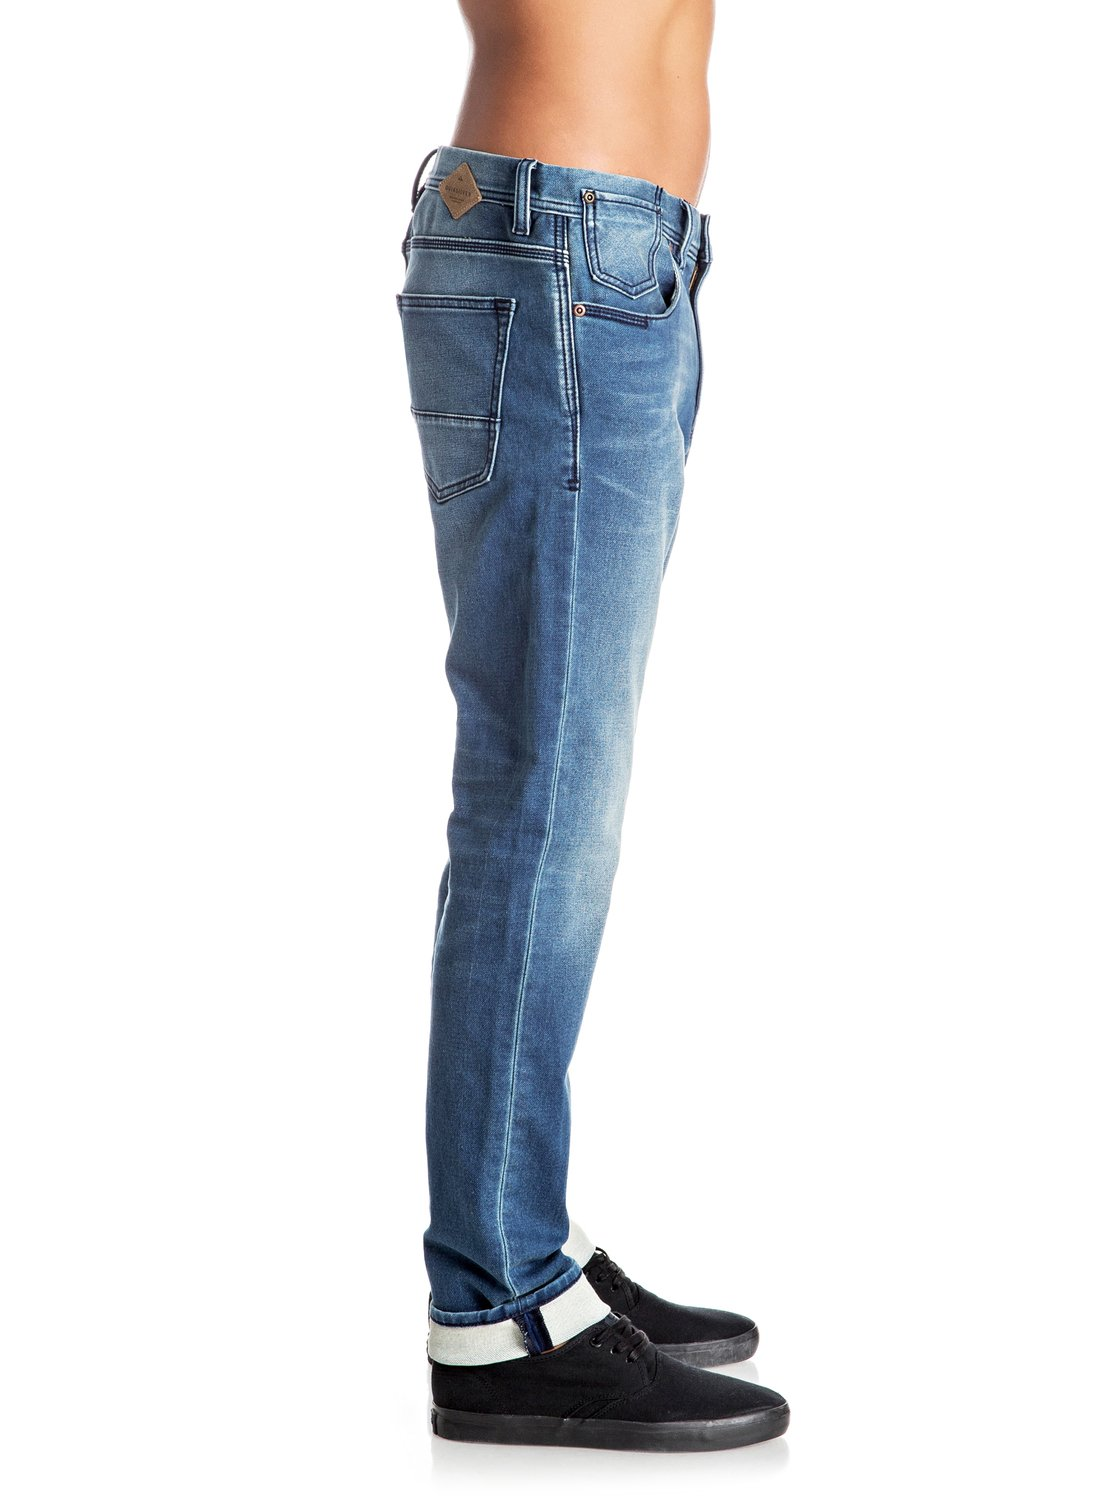 Levi's Straight Jeans Levi's® keeps everything on the straight and narrow with their Levi's ™ Straight jeans. The emerging trend in men's jeans these days is a clean cut look as opposed to the bagginess of past few years.